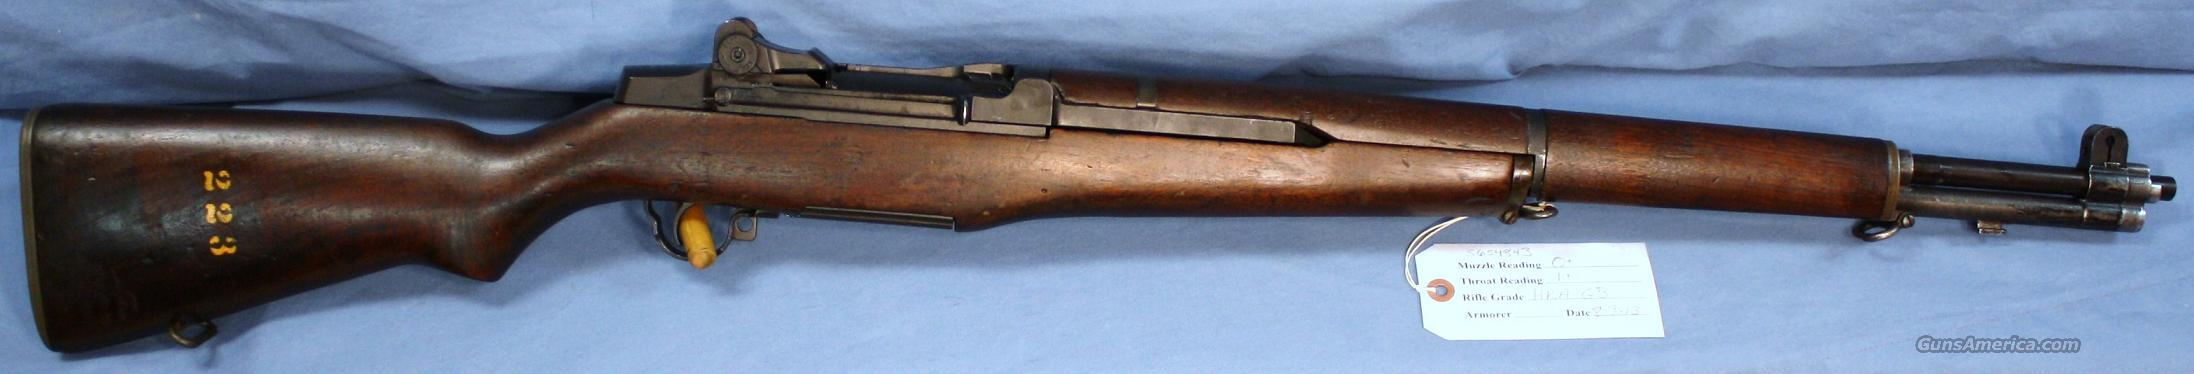 U.S. Army M1 Garand HRA Semi-Automatic Rifle .30-06 with LMR Barrel Dated 3-55  Guns > Rifles > Military Misc. Rifles US > M1 Garand